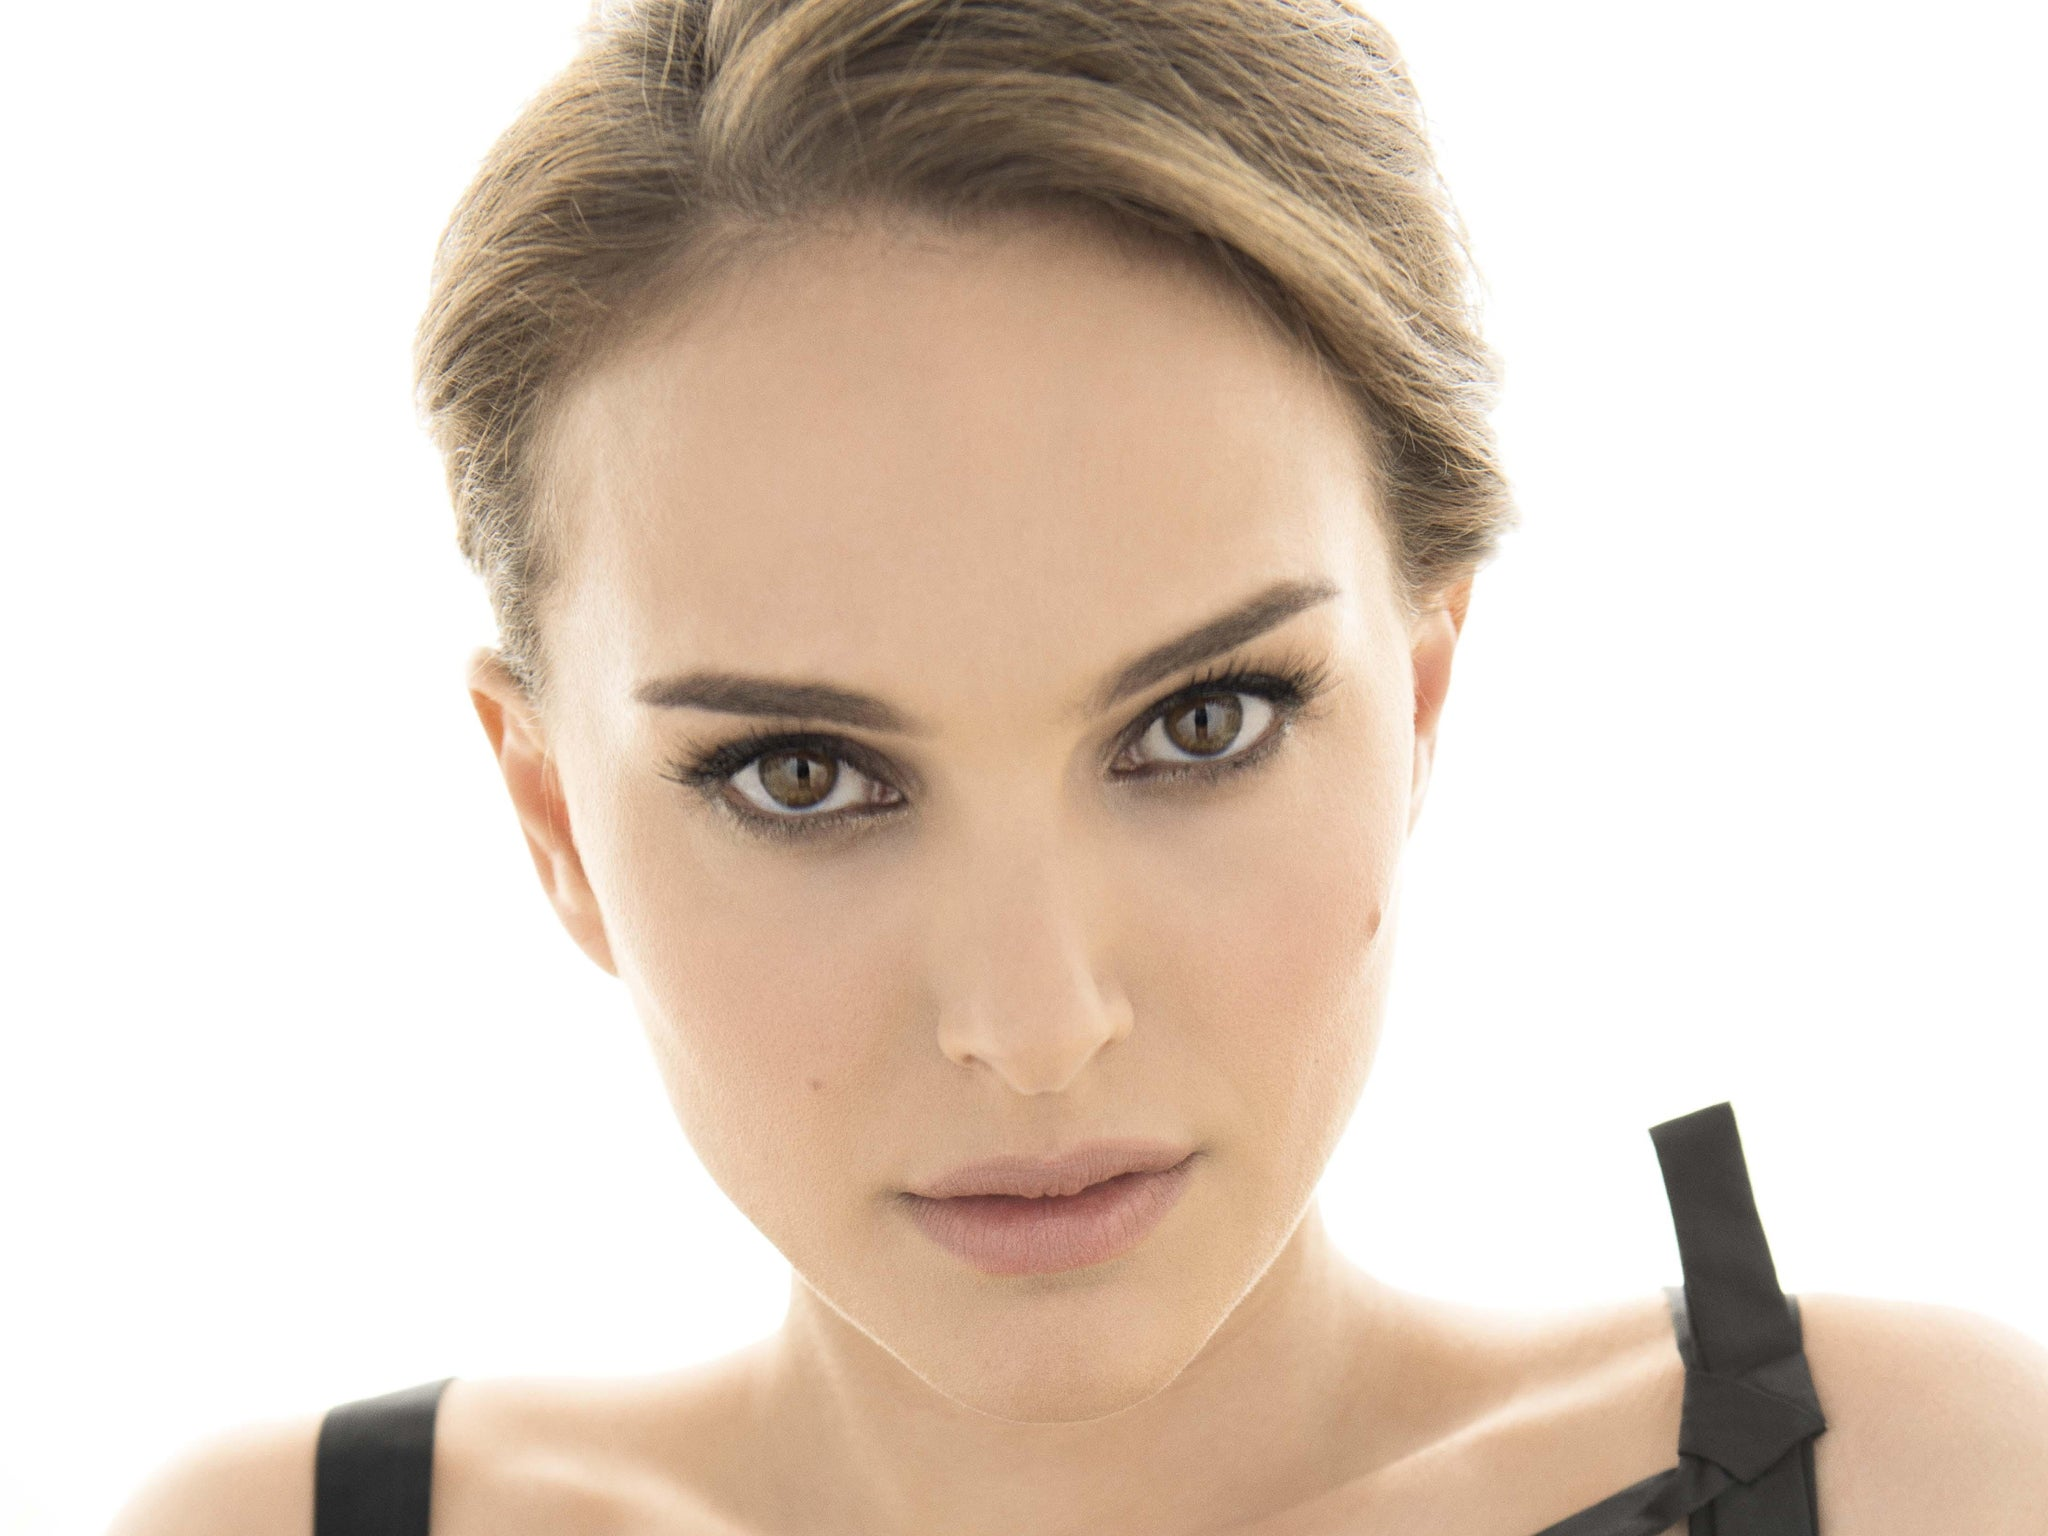 Natalie Portman interview: Black Swan actress talks anti-semitism ... Natalie Portman